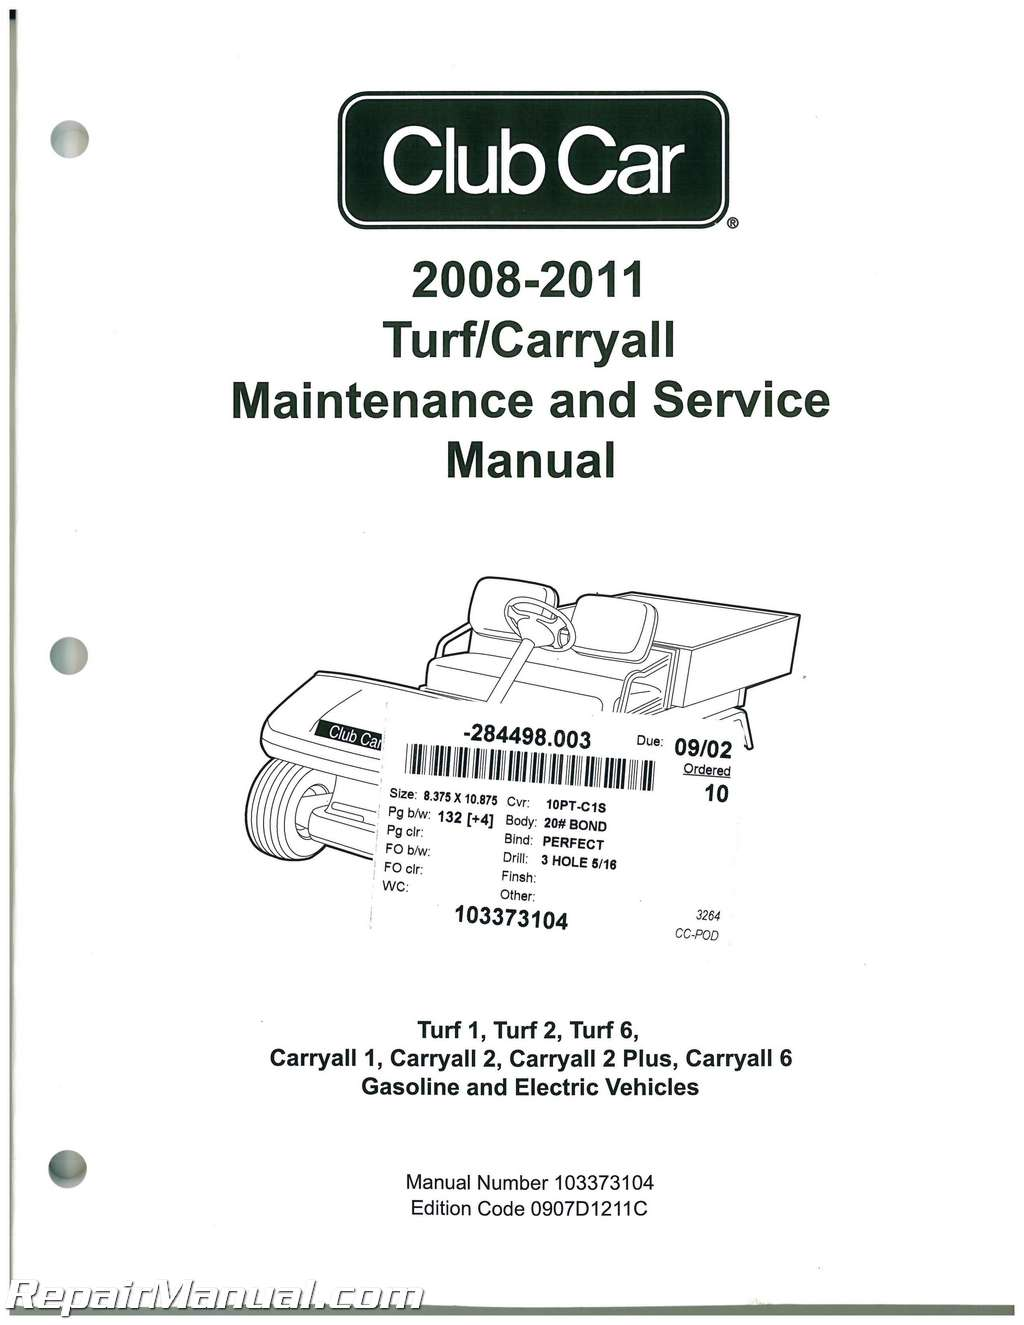 2008-2011 Club Car Turf, Carryall Turf 1, Turf 2, Turf 6